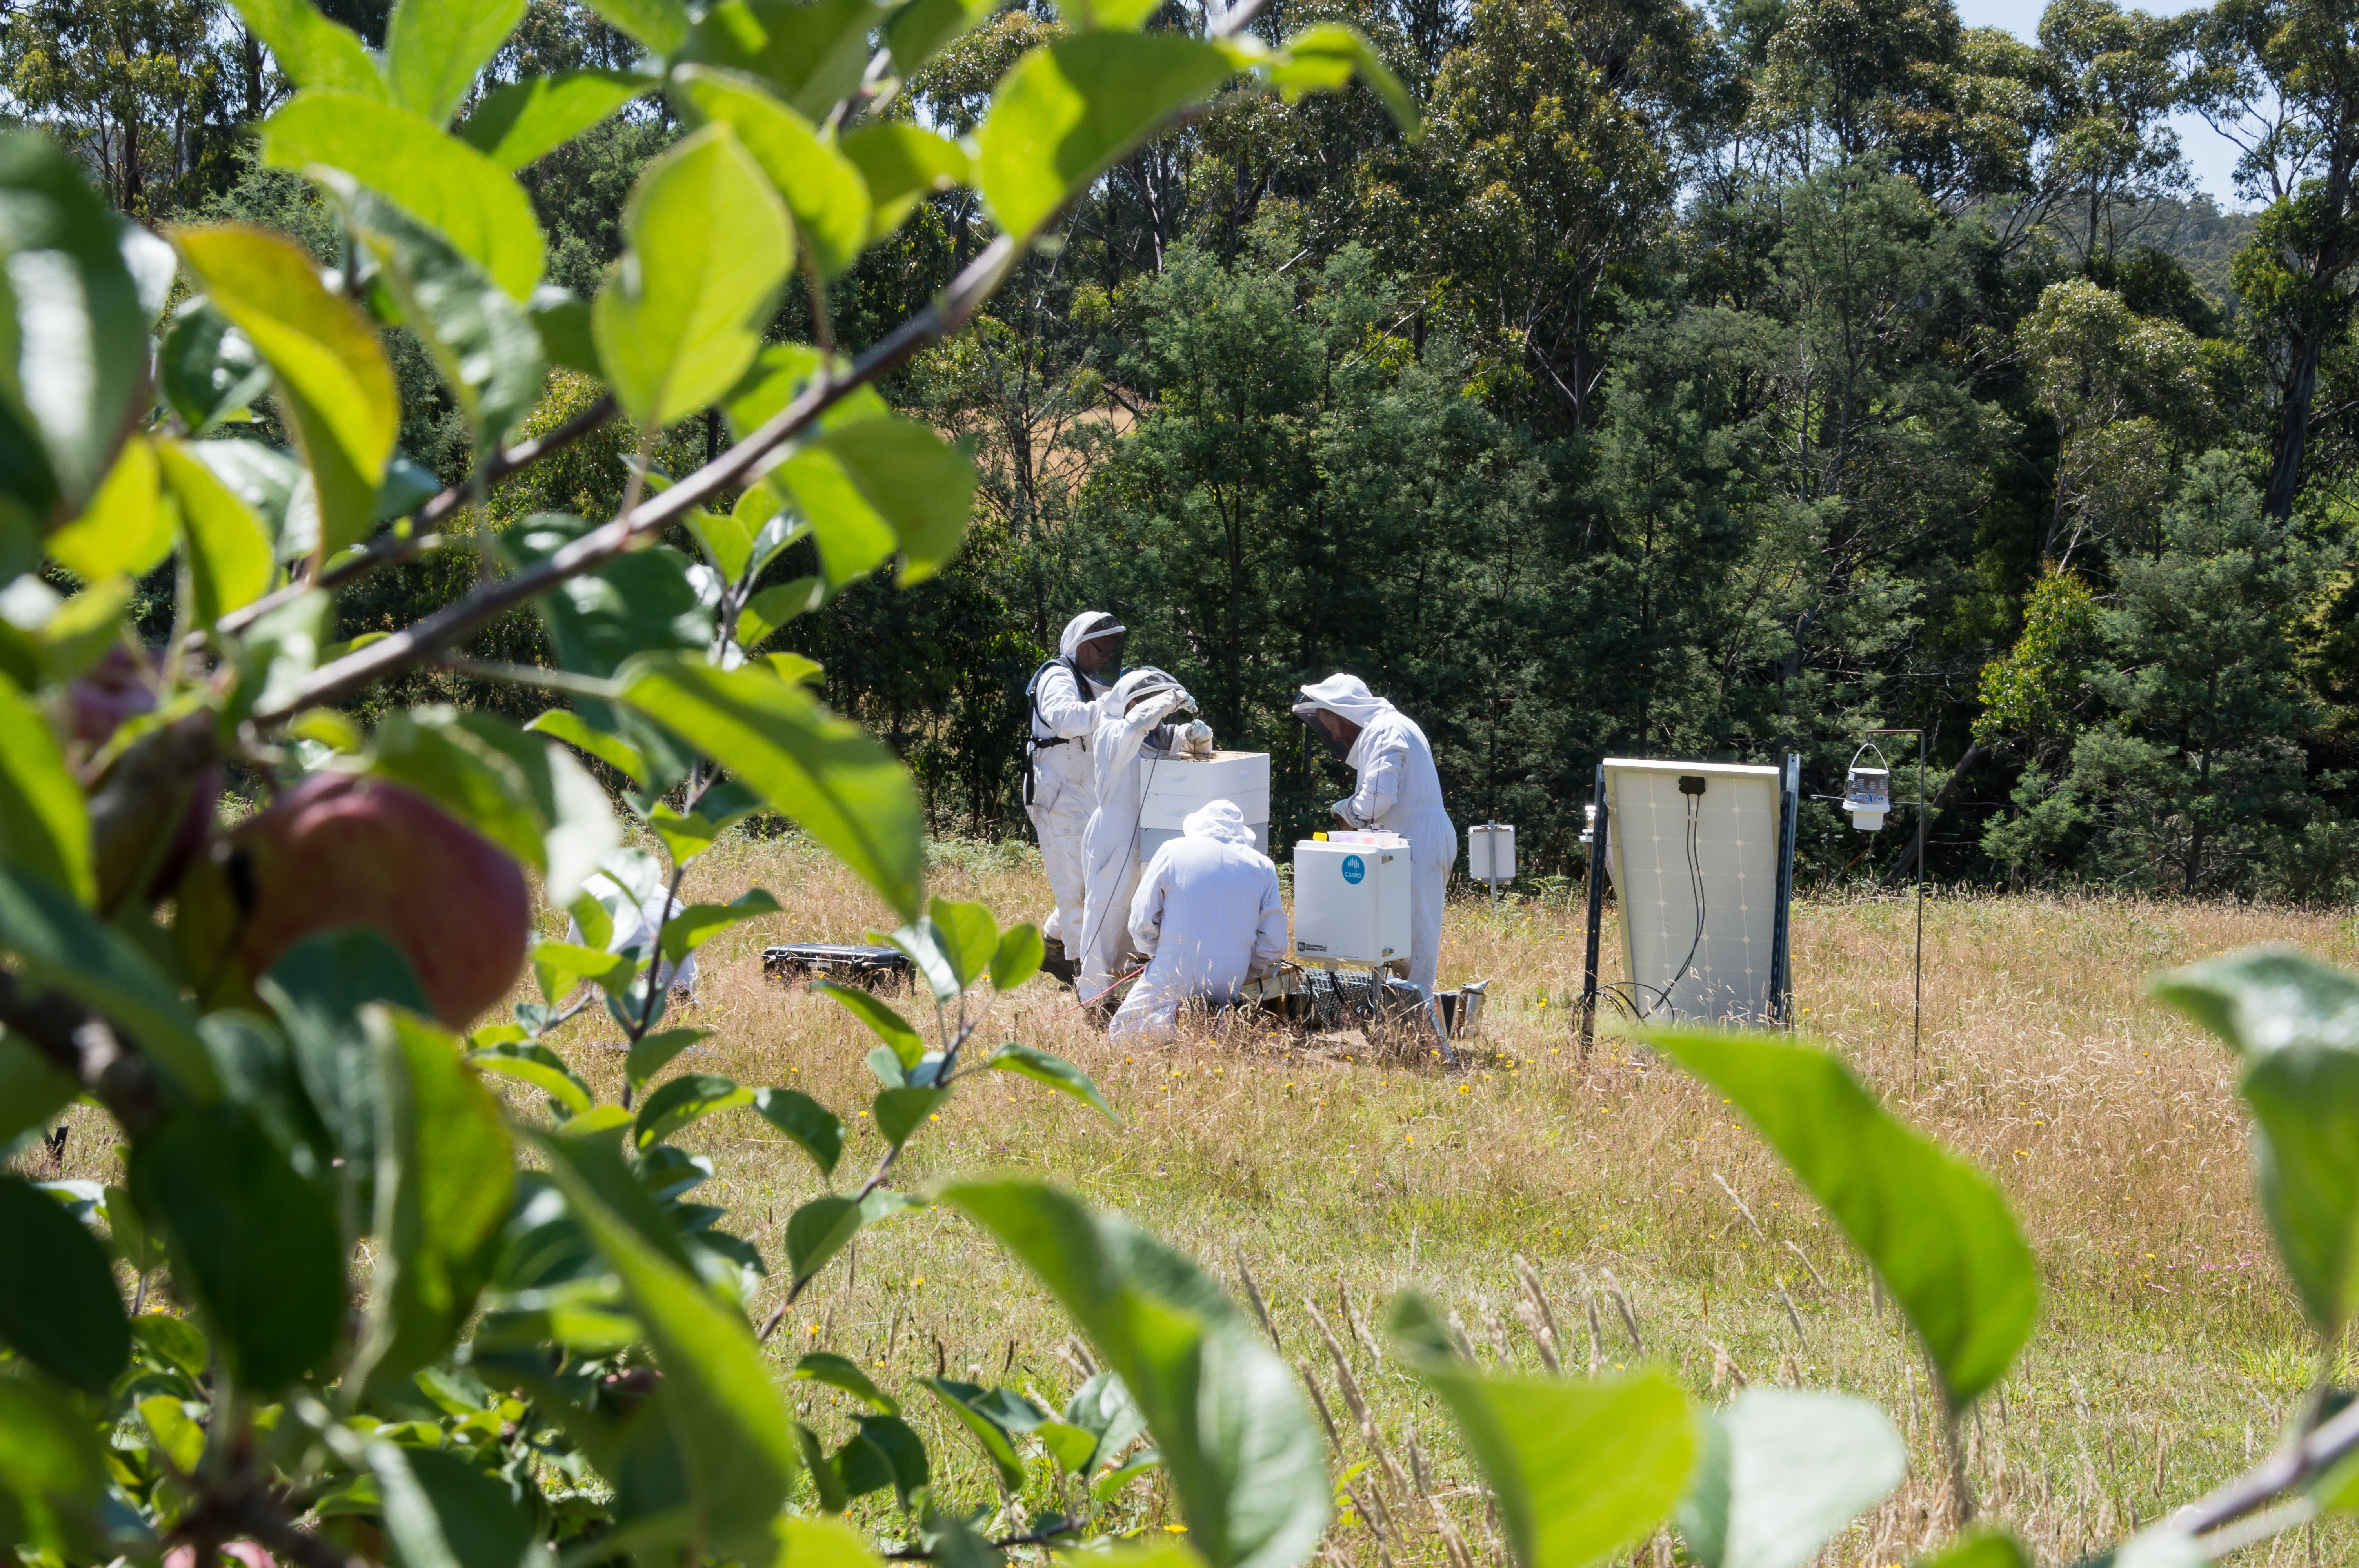 Our team gathering data from a bee hive in the Huon Valley, Tasmania